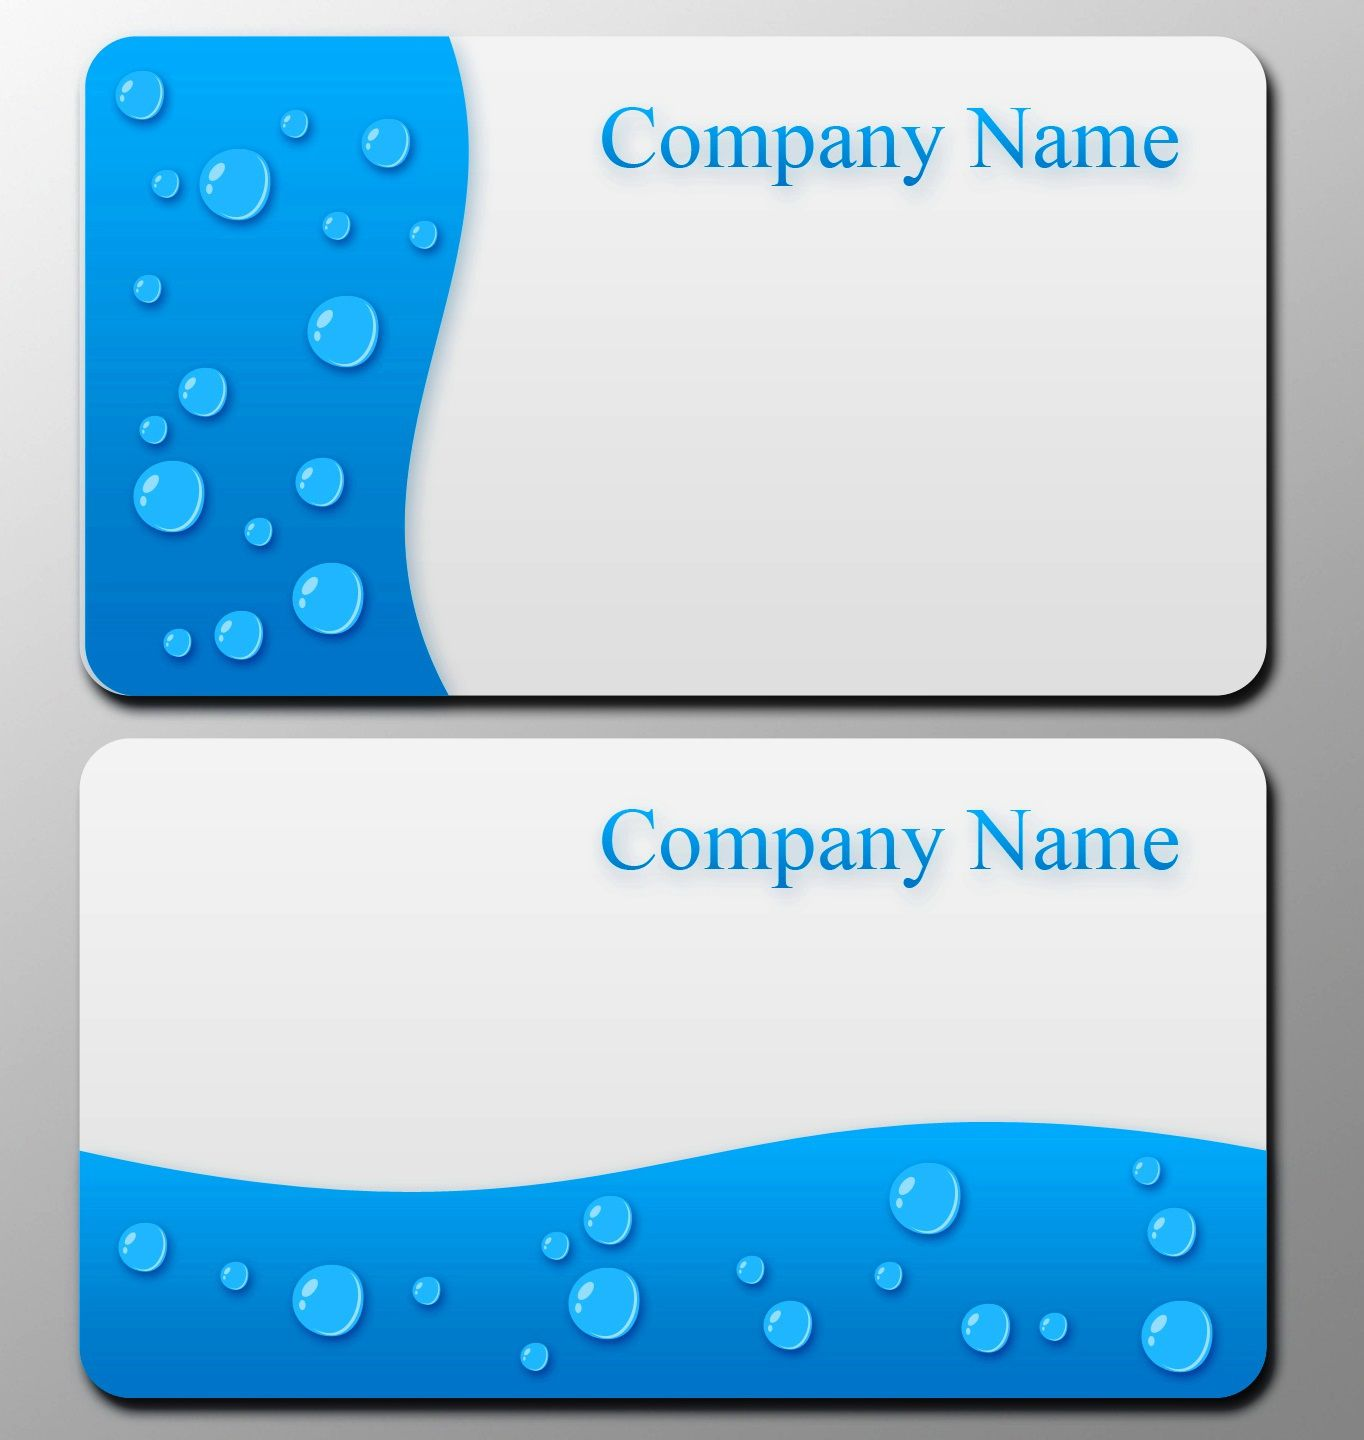 006 Incredible Blank Busines Card Template Psd Free Download Example  PhotoshopFull